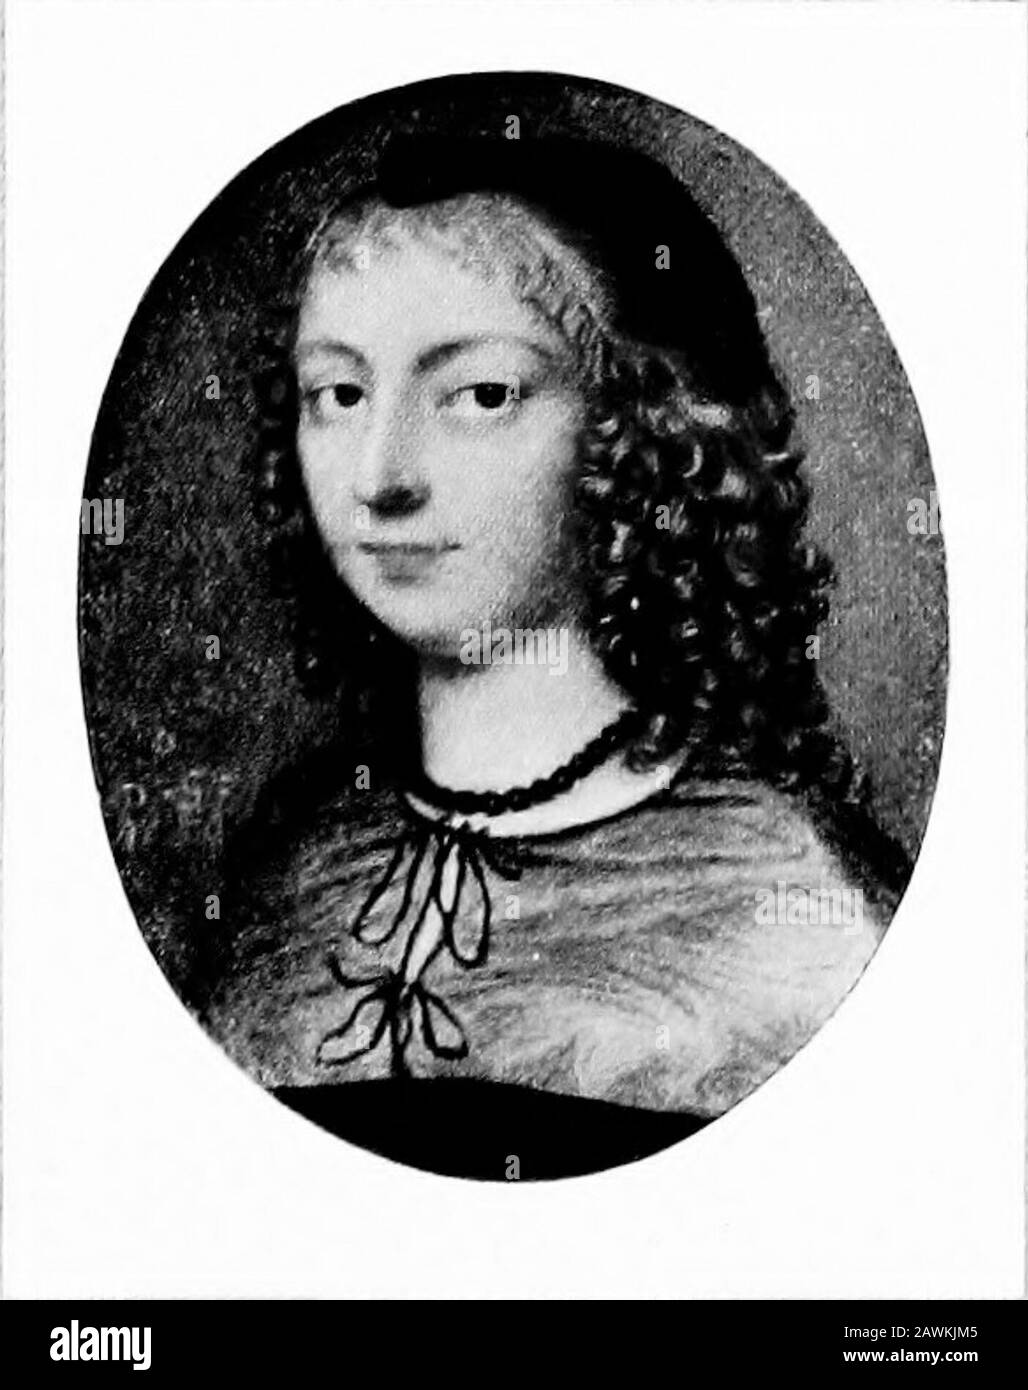 Portrait miniatures; . MISS CHRISTIAN TEMPLEBY OR AFTER SAMUEL COOPER FROM THE COLLECTION OF THE RT. HON. SIR CHARLES DILKE, BART., M.P,. RACHEL FANE, COUNTESS OF BATH AND LATER OF MIDDLESEX (161 2-1680) BY DAVID DES GRANGES FROM THE COLLECTION OF MR. E. M. HODGKIN3 Stock Photo